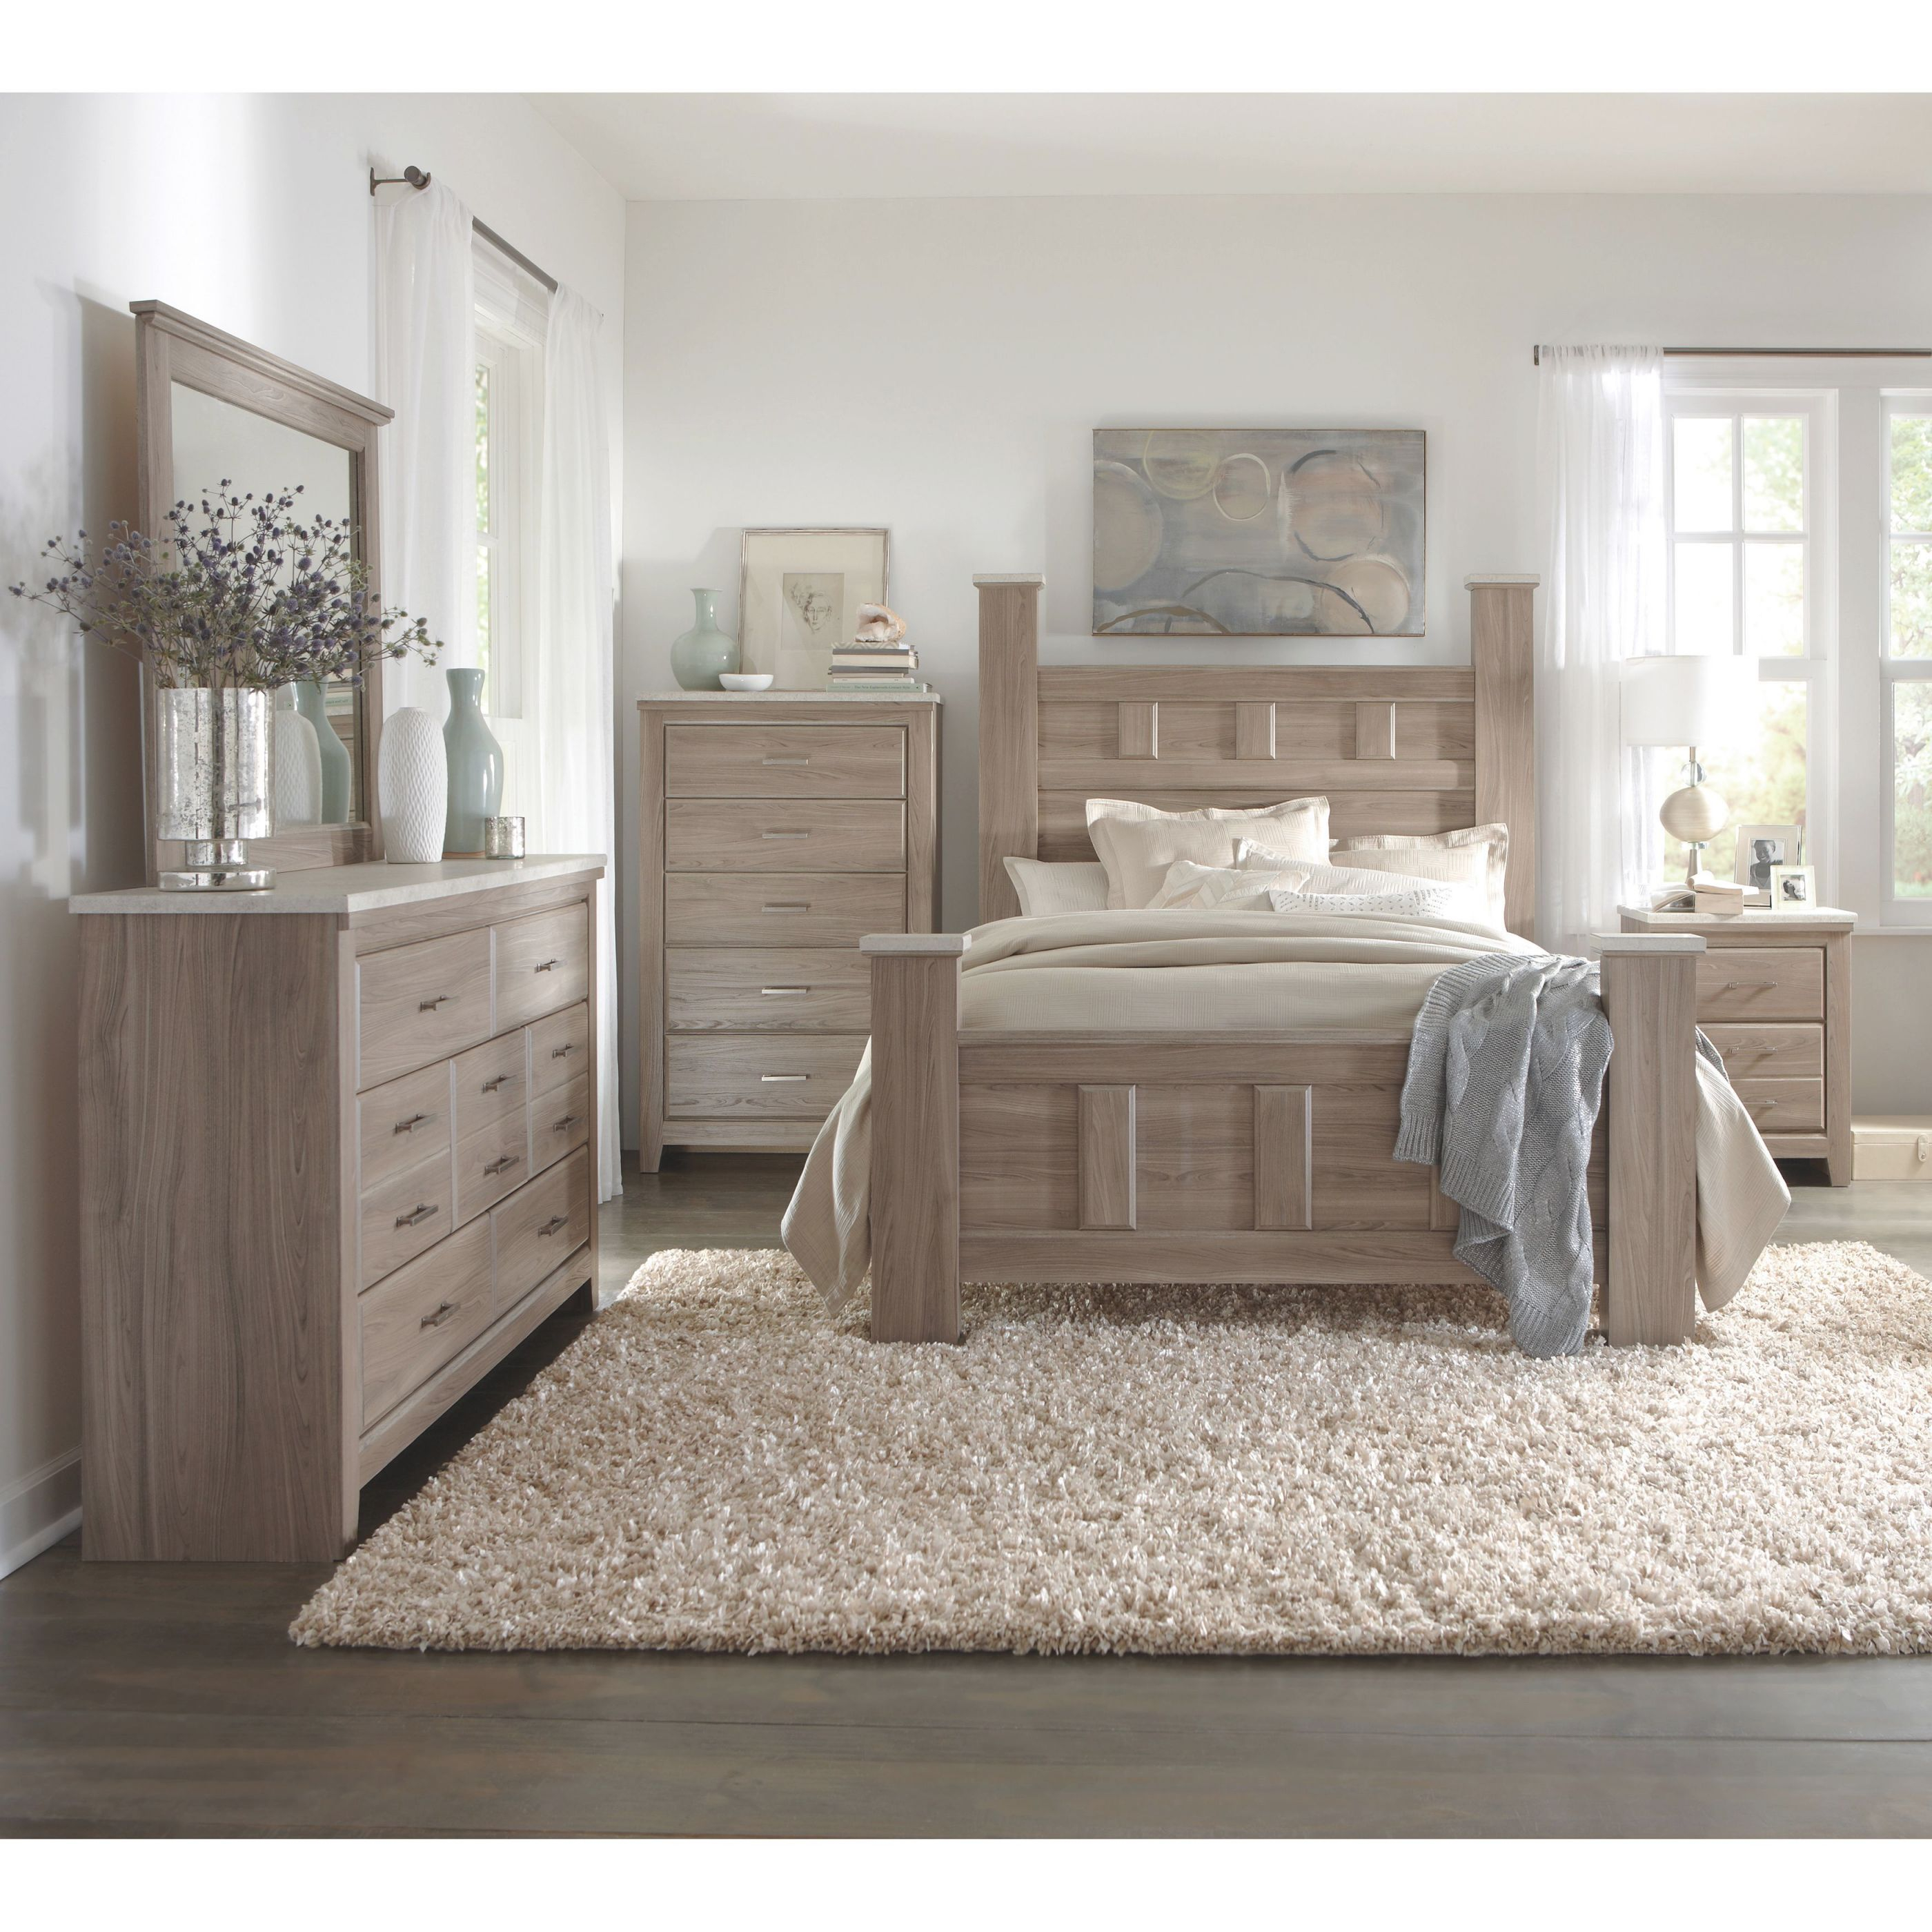 New Queen Bedroom Furniture Sets - Awesome Decors